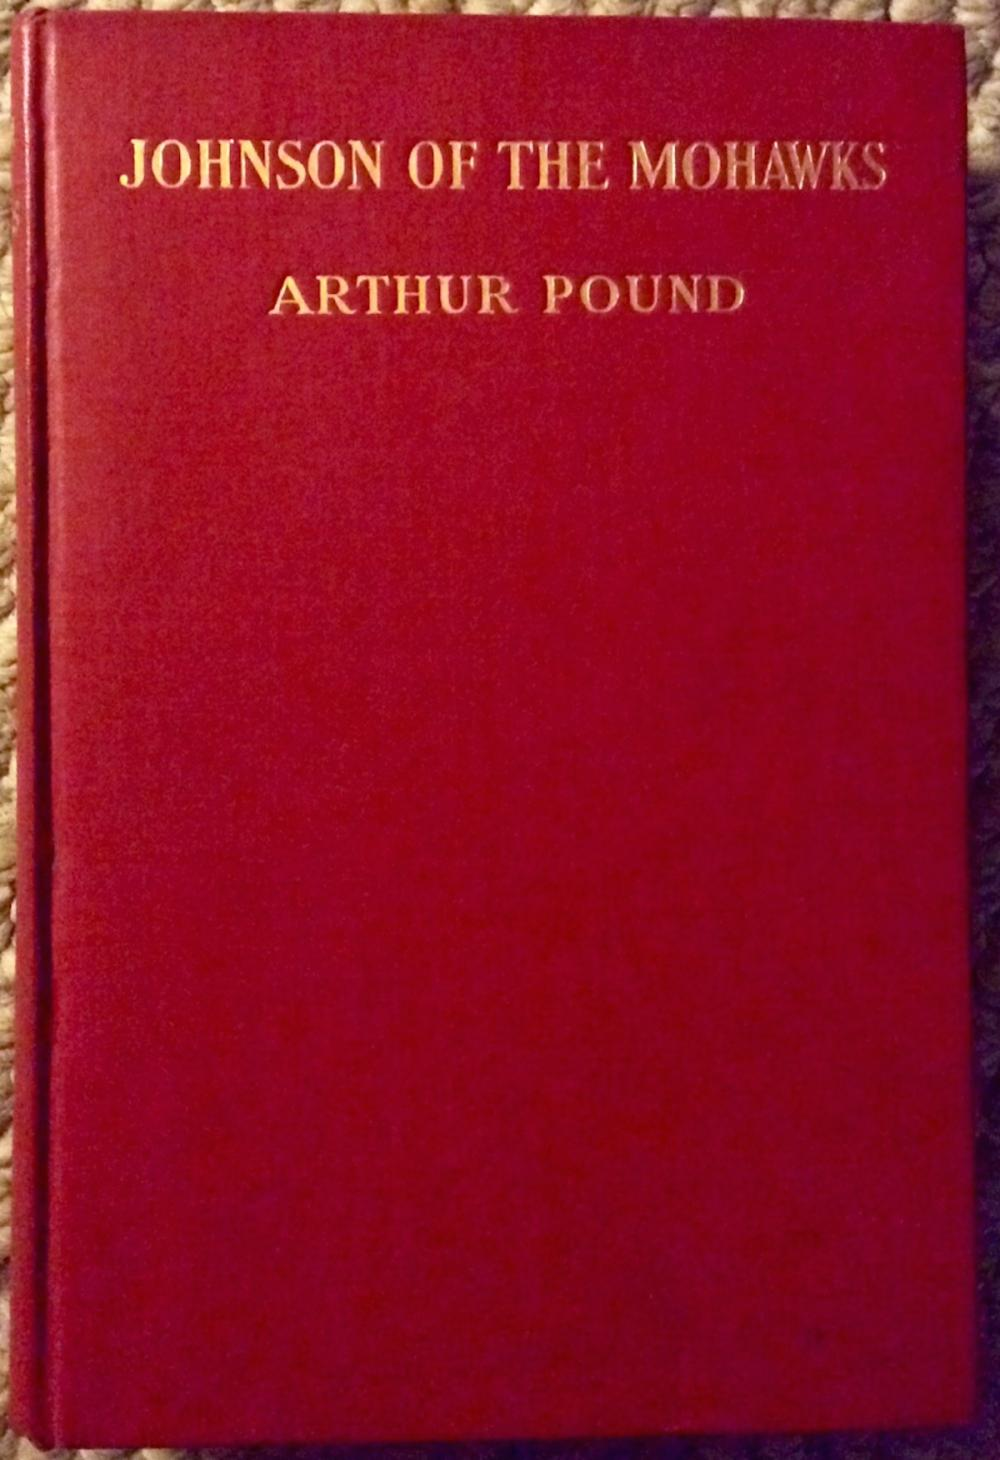 """Johnson Of The Mohawks"" by Arthur Pound ANTIQUE 1930 Hardcover Biography Of Early Colonial Official 1st Edition 1st Printing"